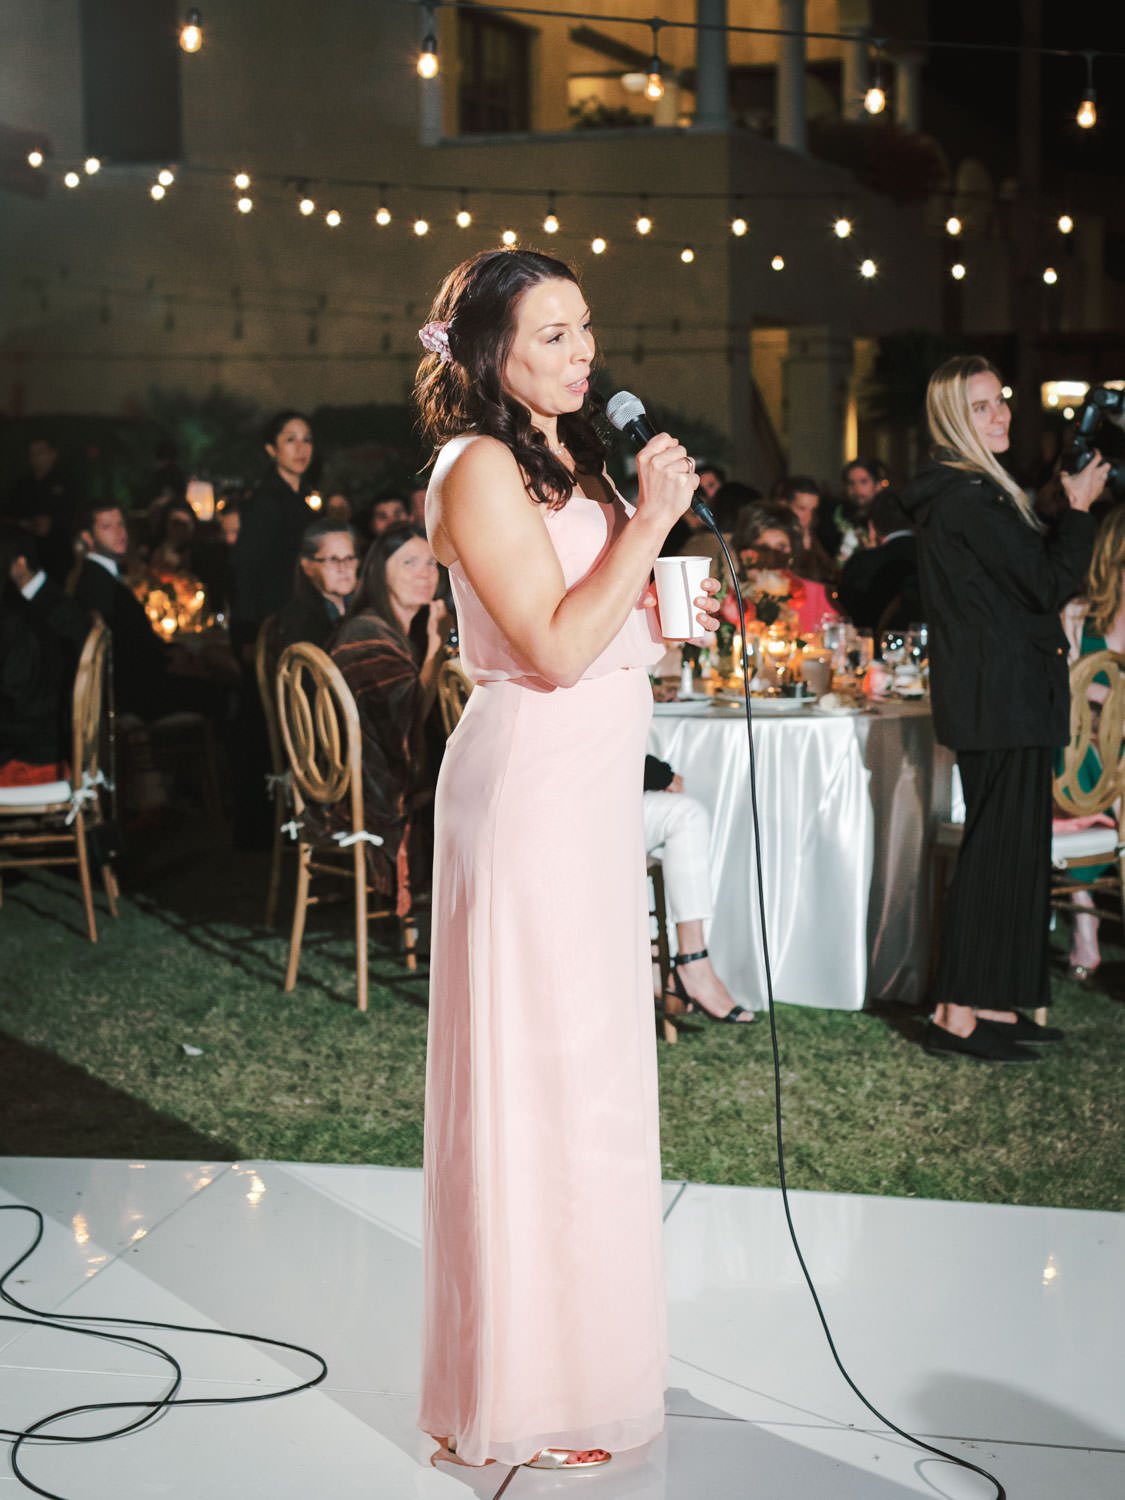 Maid of honor toast wearing a pink dress. Miramonte Resort wedding reception. Photography by Cavin Elizabeth.